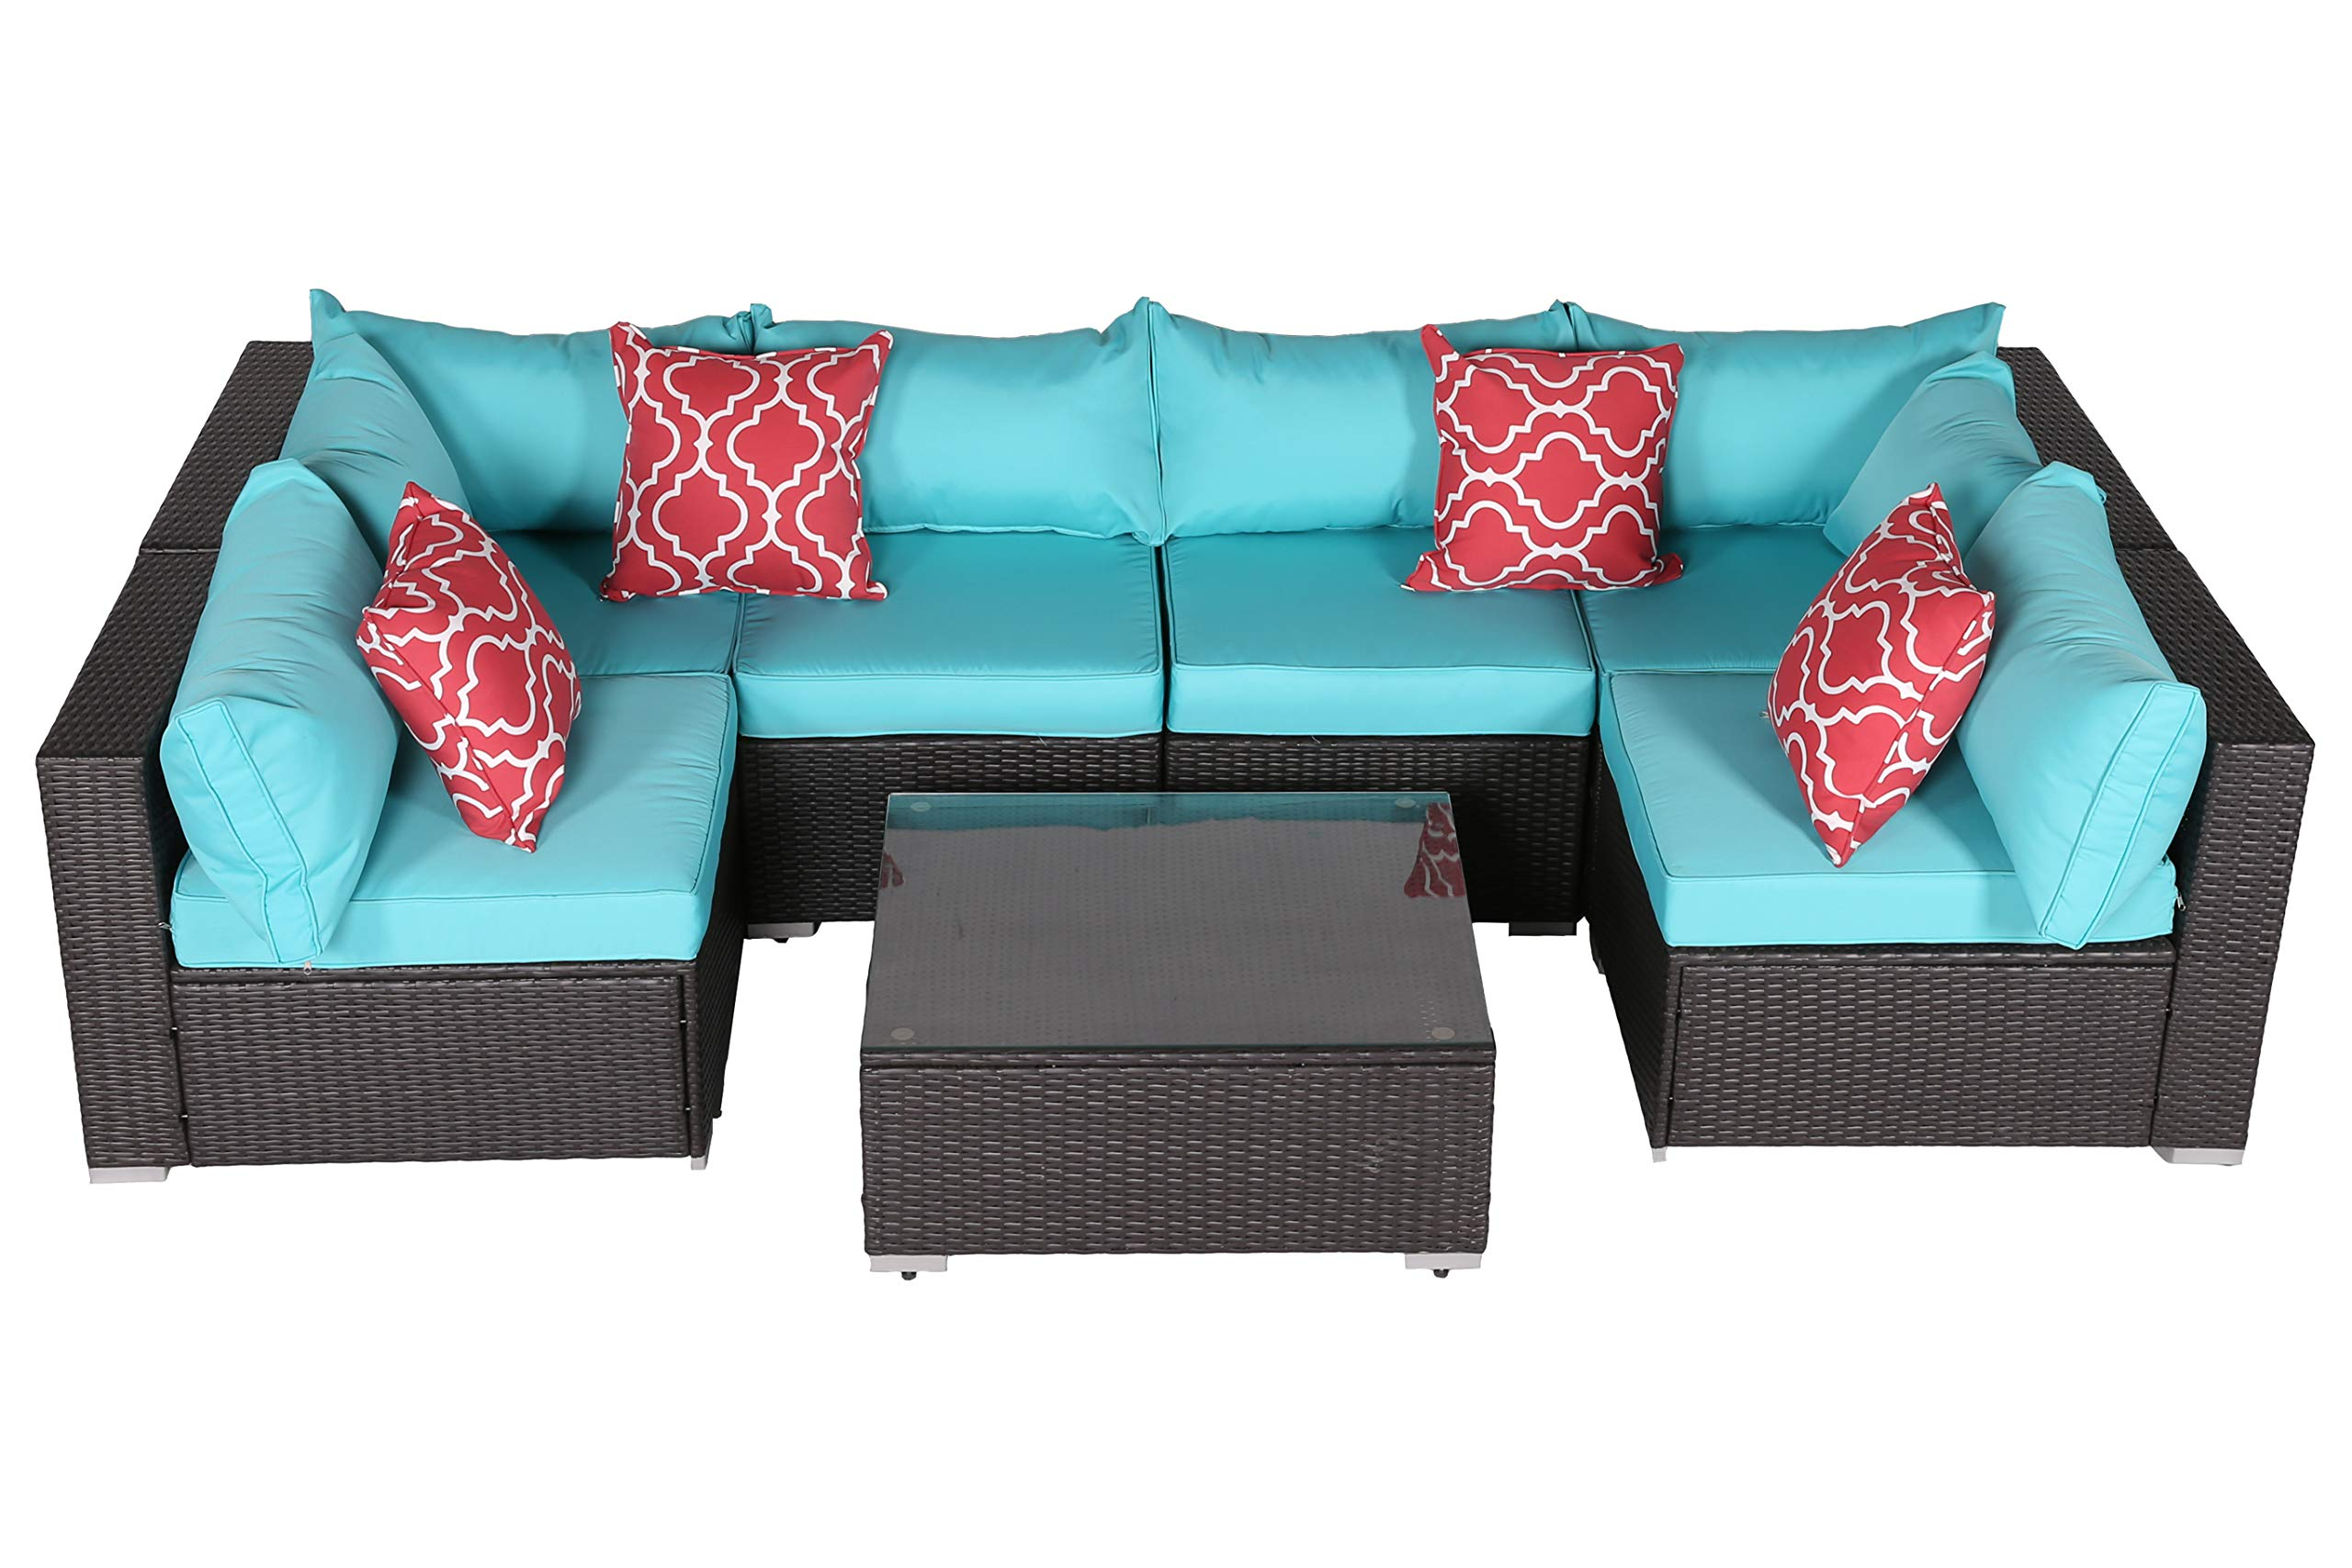 Do4U Patio Sofa 7-Piece Set Outdoor Furniture Sectional All-Weather Wicker Rattan Sofa Turquoise Seat & Back Cushions, Garden Lawn Pool Backyard Outdoor Sofa Wicker Conversation Set (7555-Turquoise) by Do4U